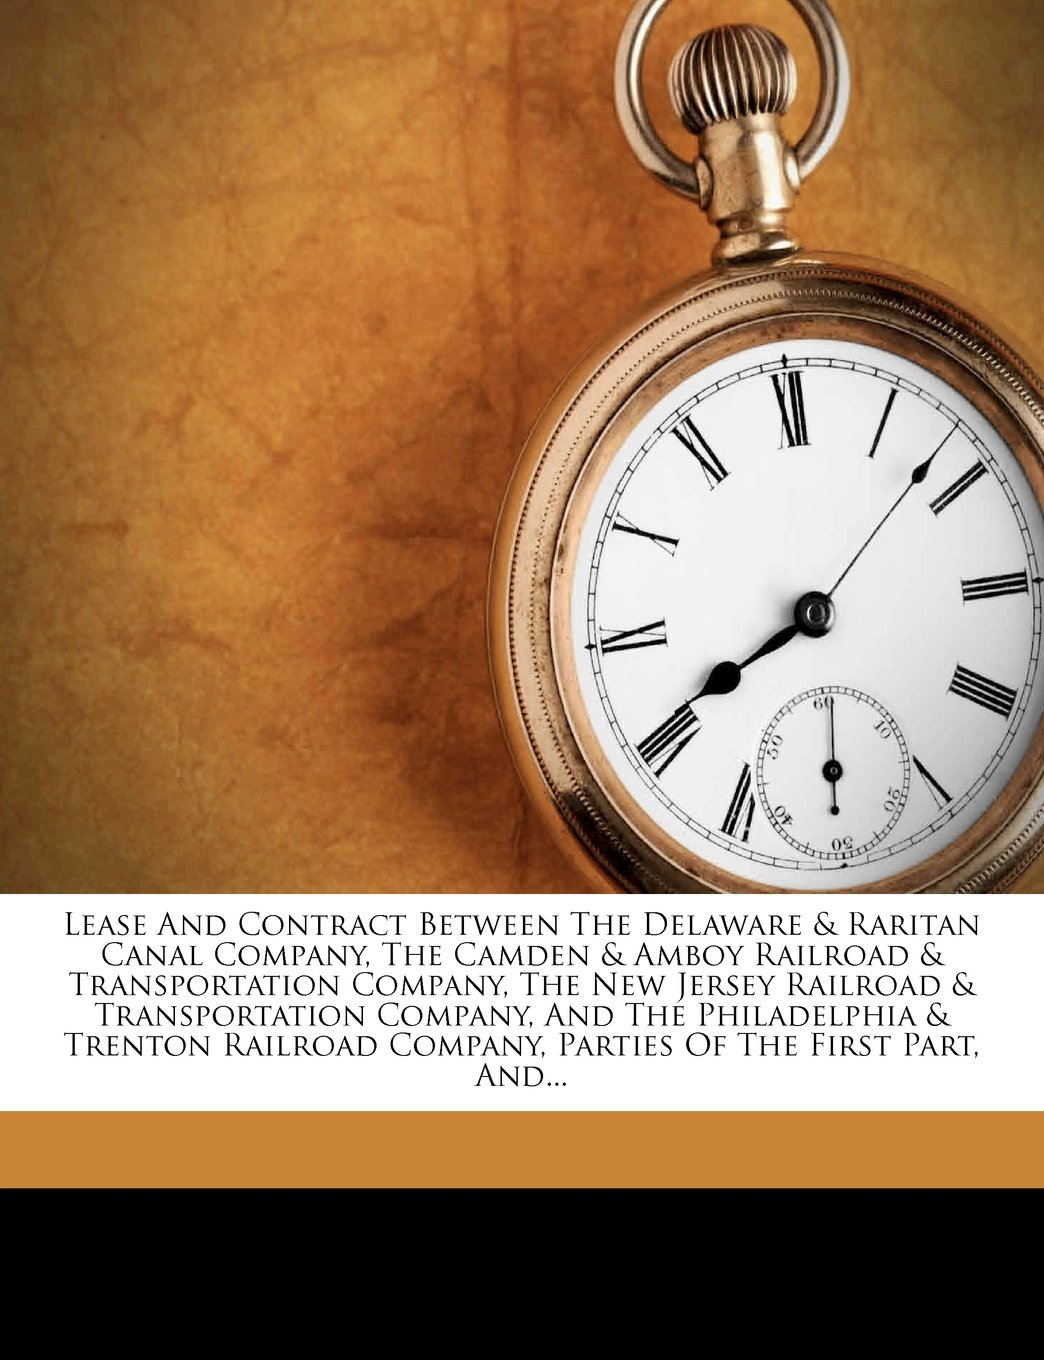 Download Lease And Contract Between The Delaware & Raritan Canal Company, The Camden & Amboy Railroad & Transportation Company, The New Jersey Railroad & ... Company, Parties Of The First Part, And... pdf